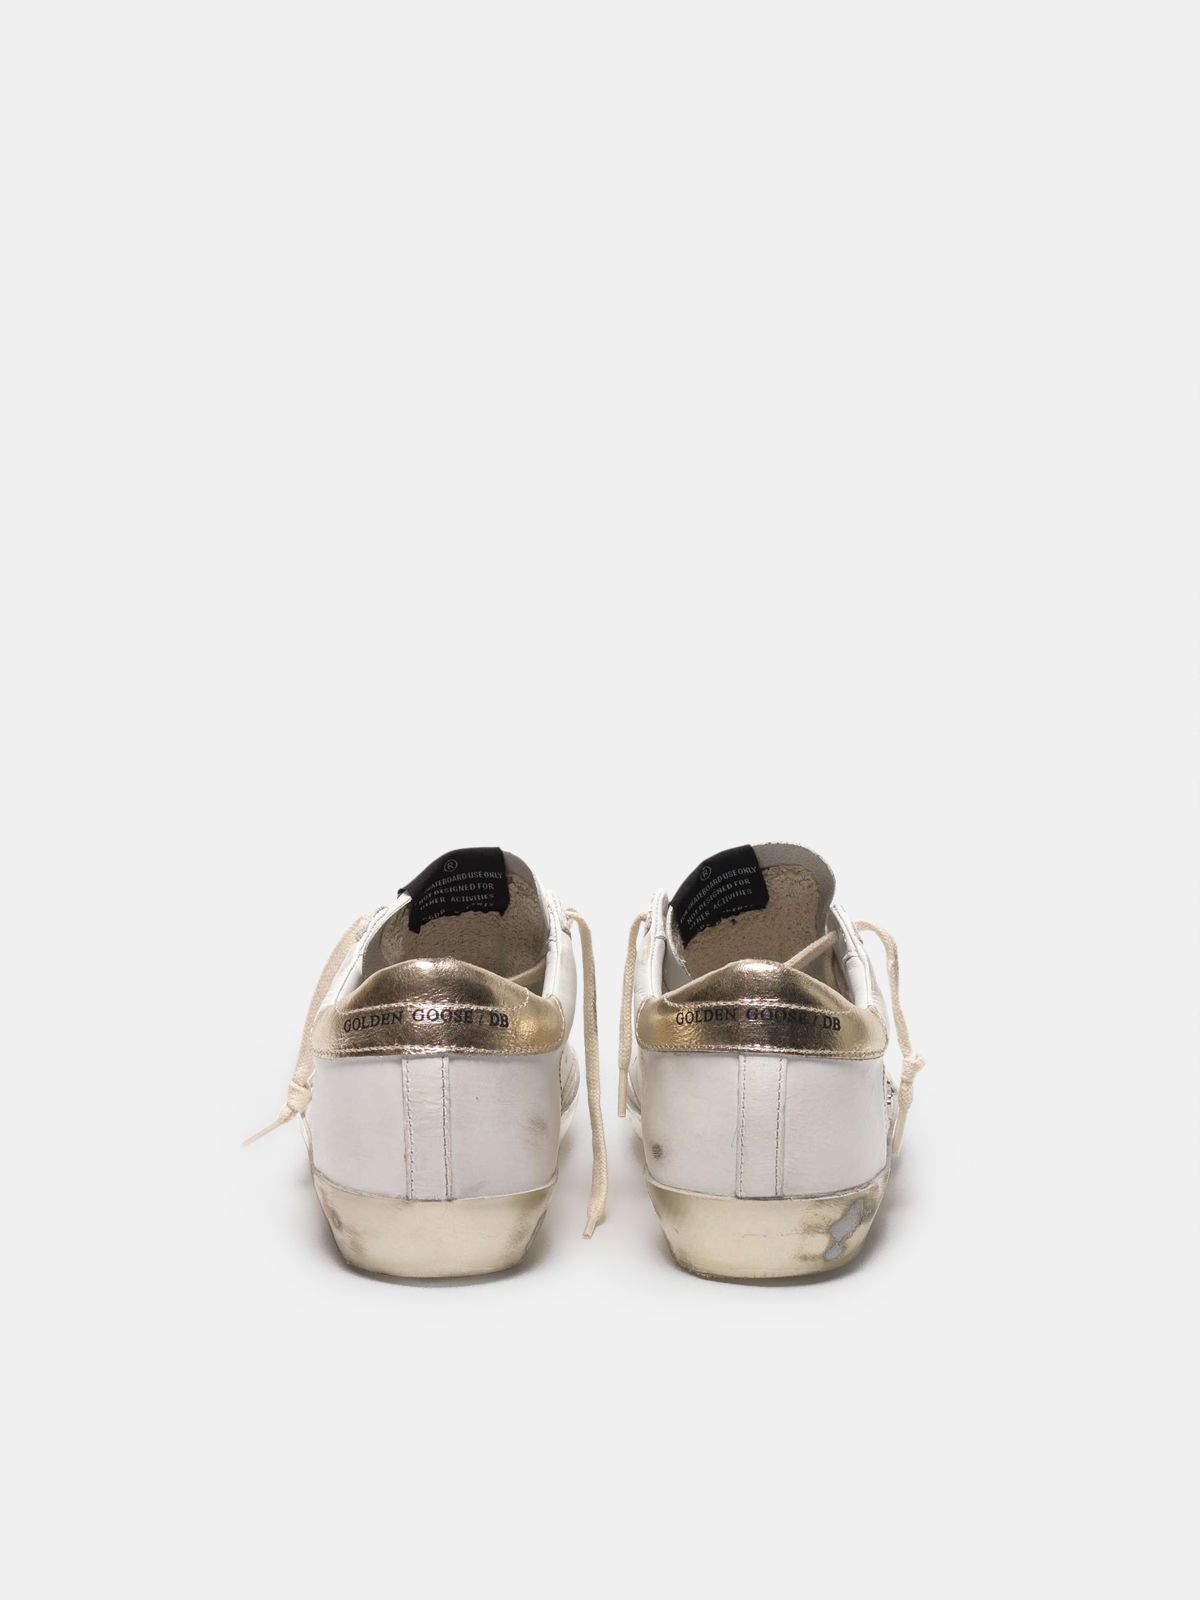 Golden Goose - Super-Star sneakers with gold sparkle foxing and metal stud lettering in